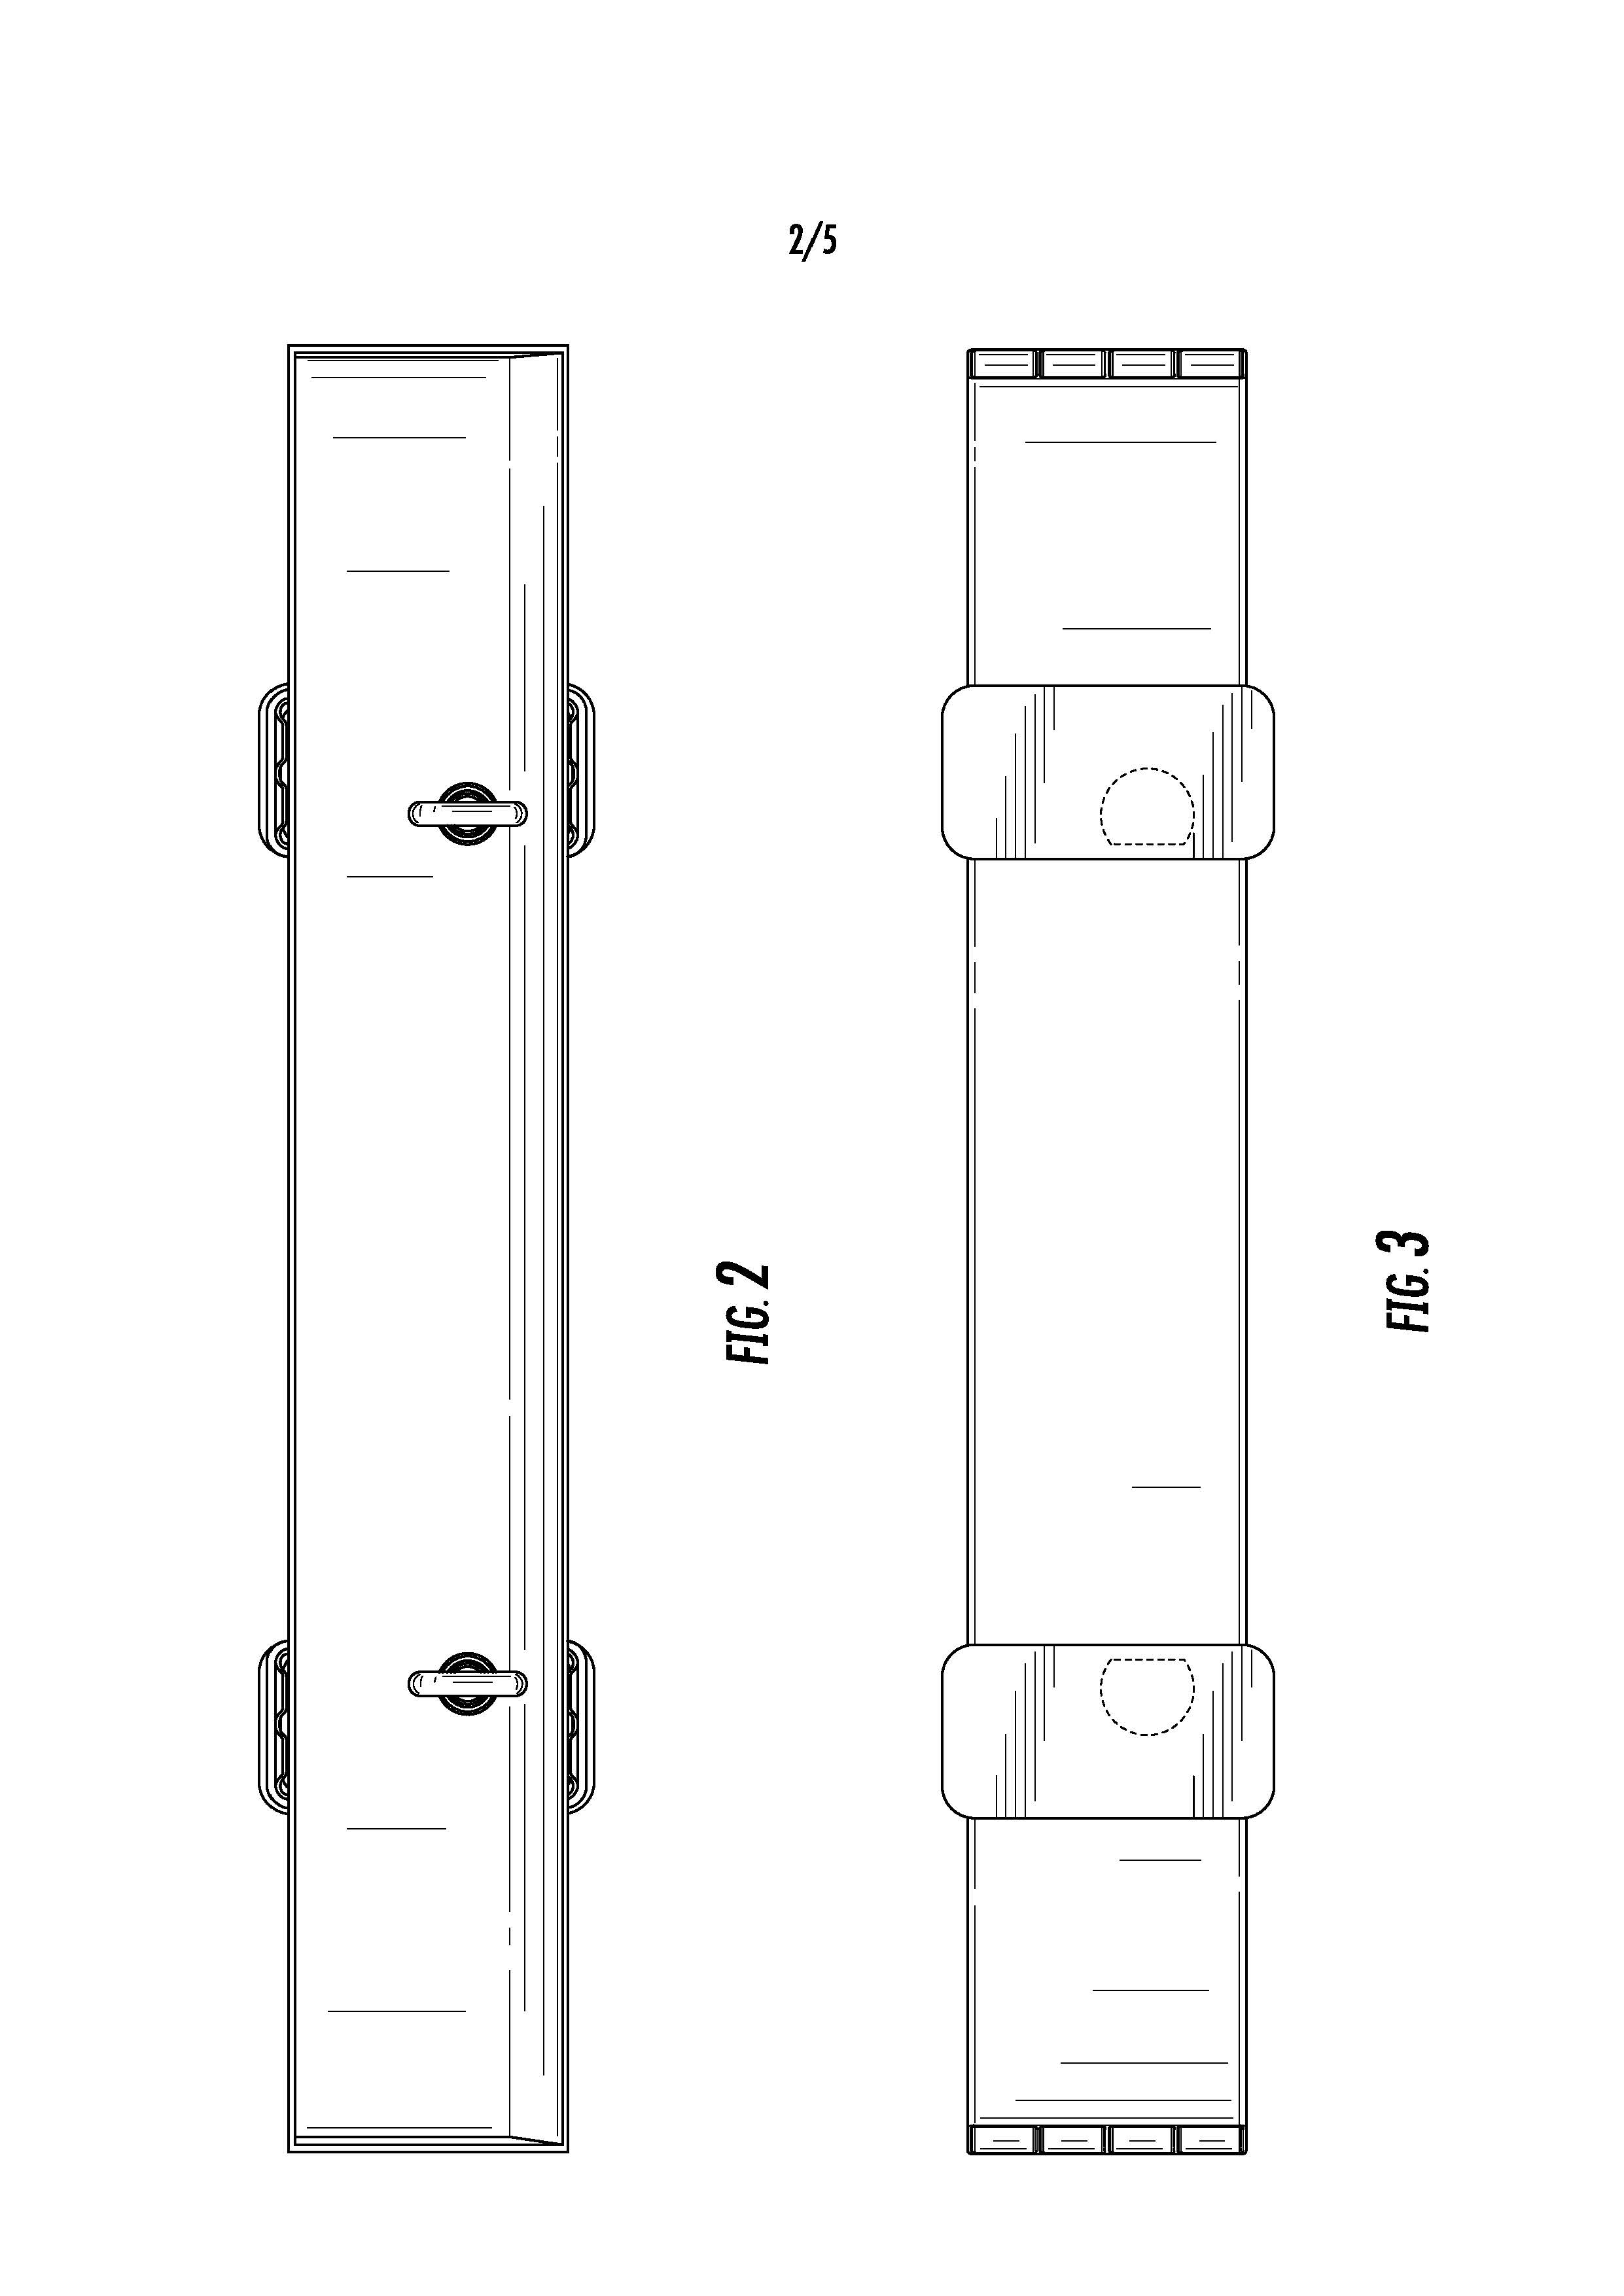 Bumper_tow-bar_Page_2